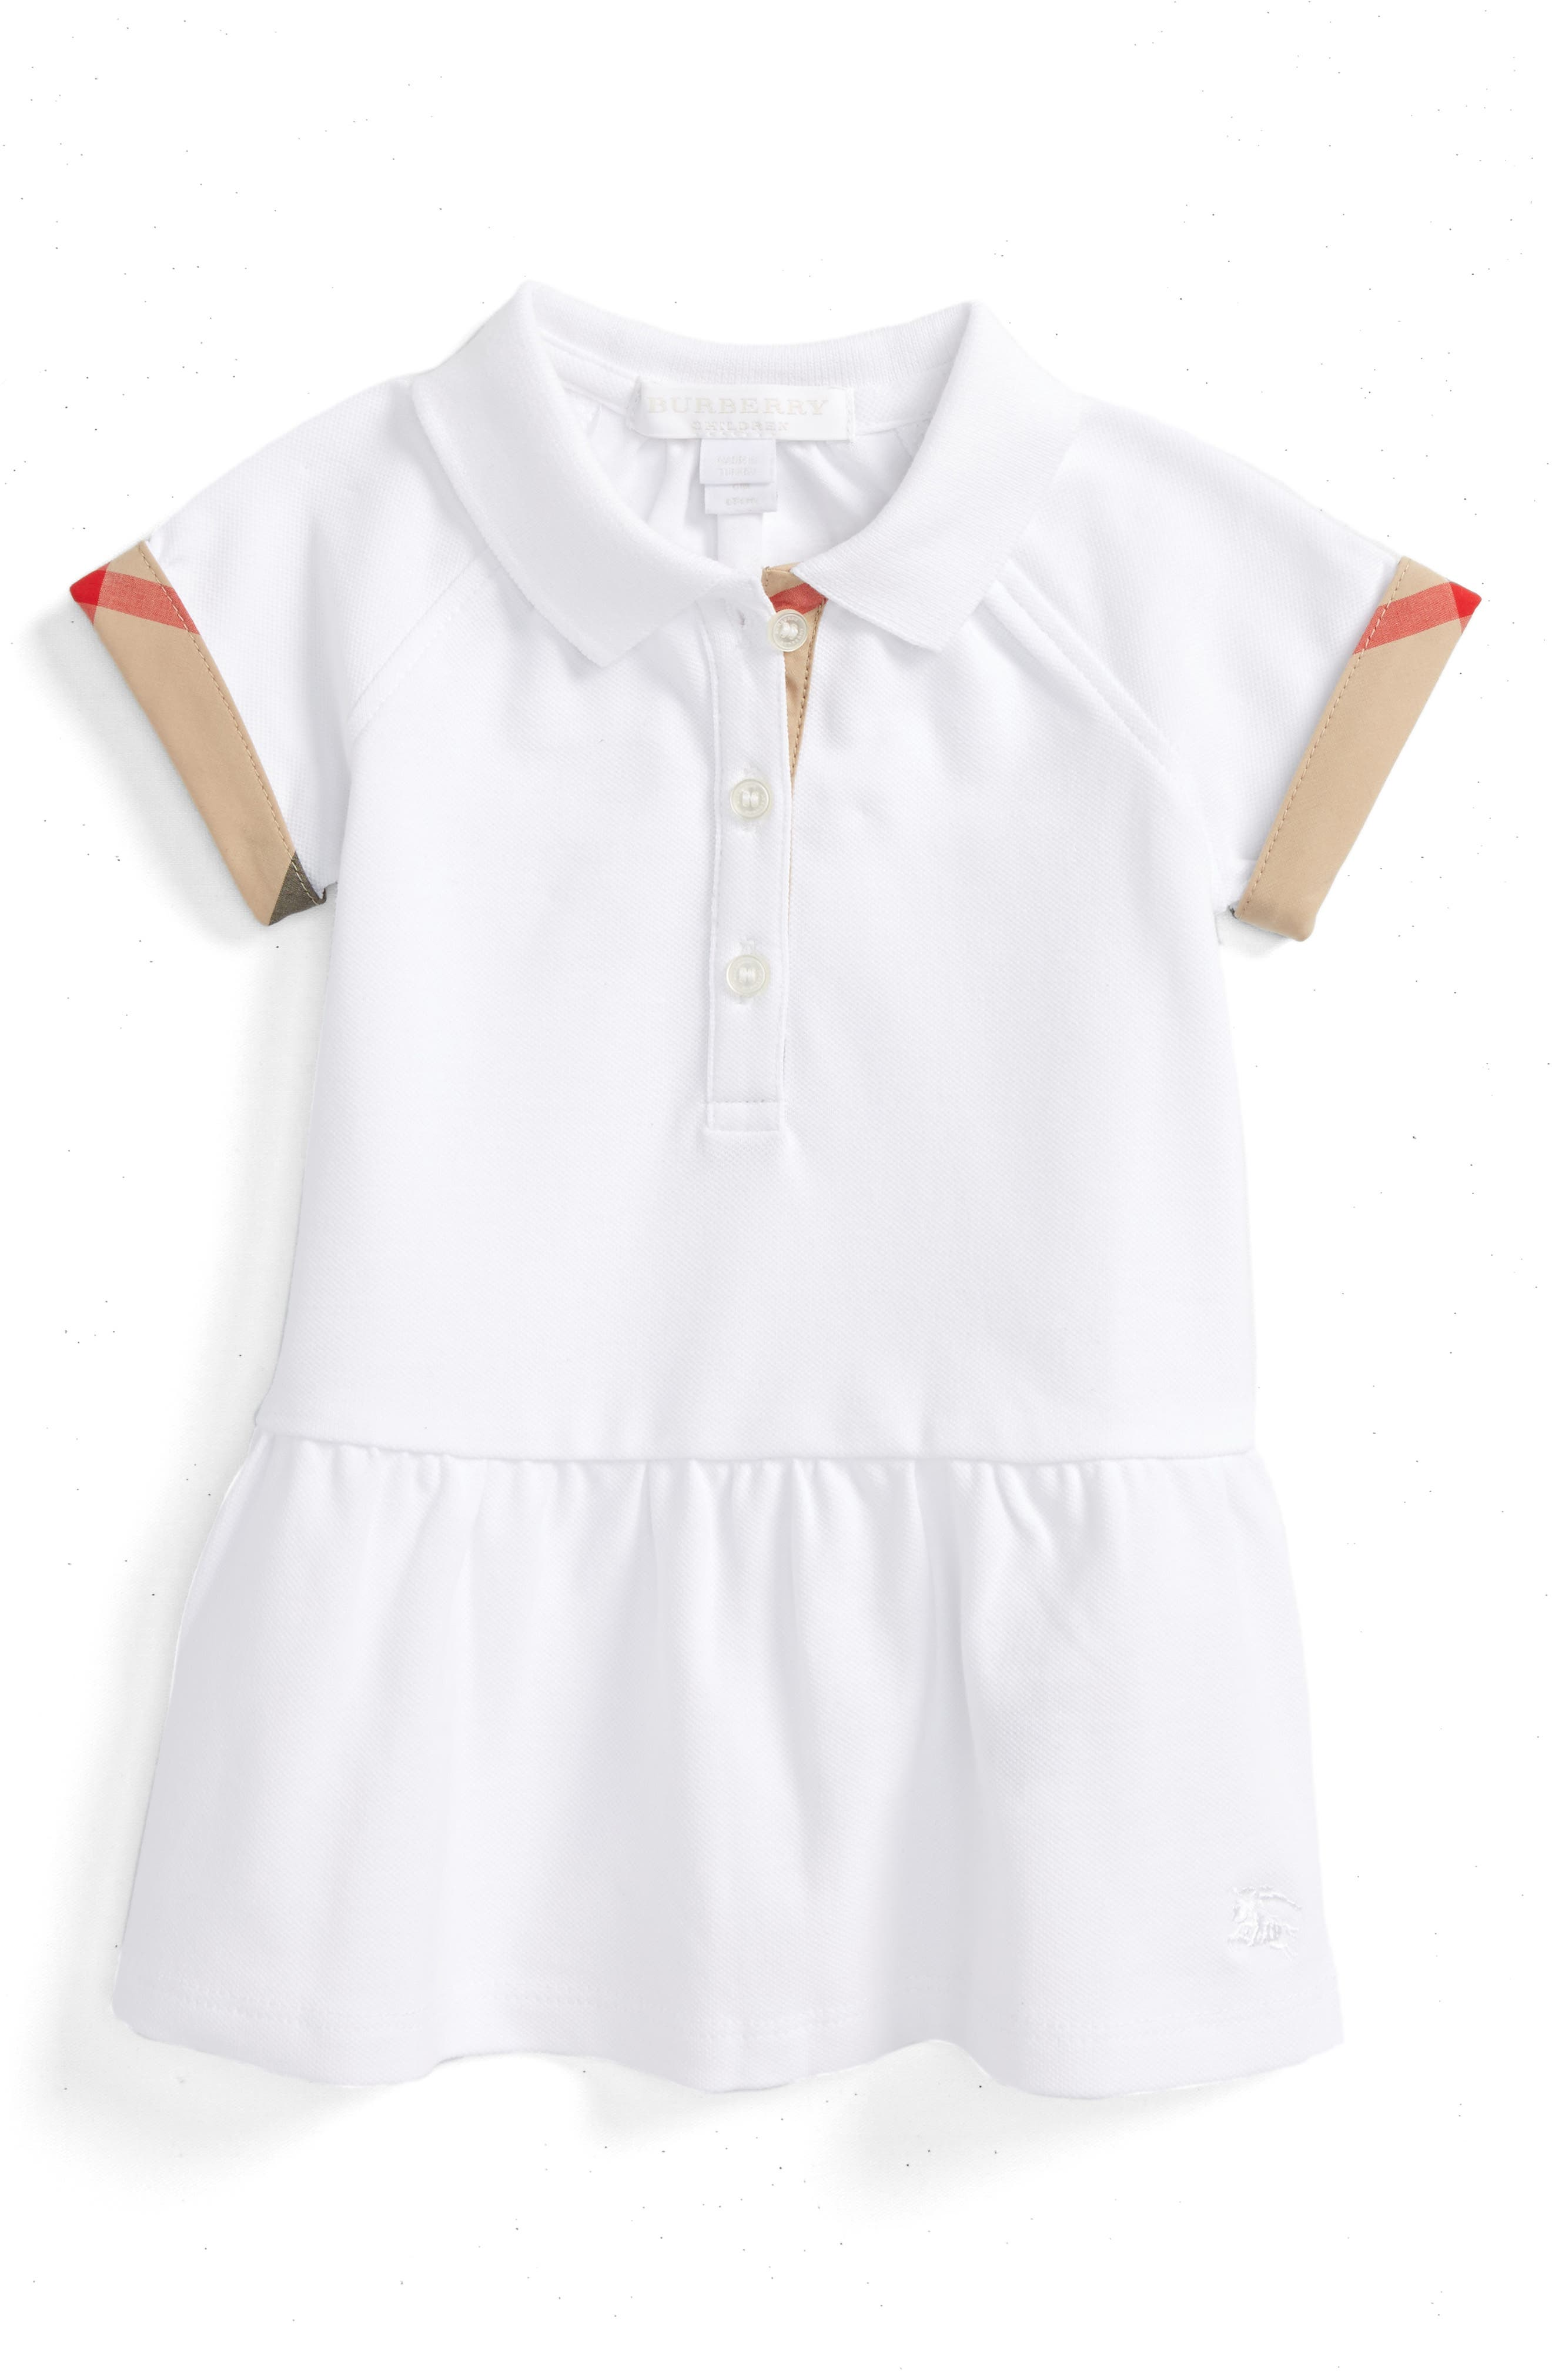 Alternate Image 1 Selected - Burberry 'Mini Cali' Polo Dress (Baby Girls)